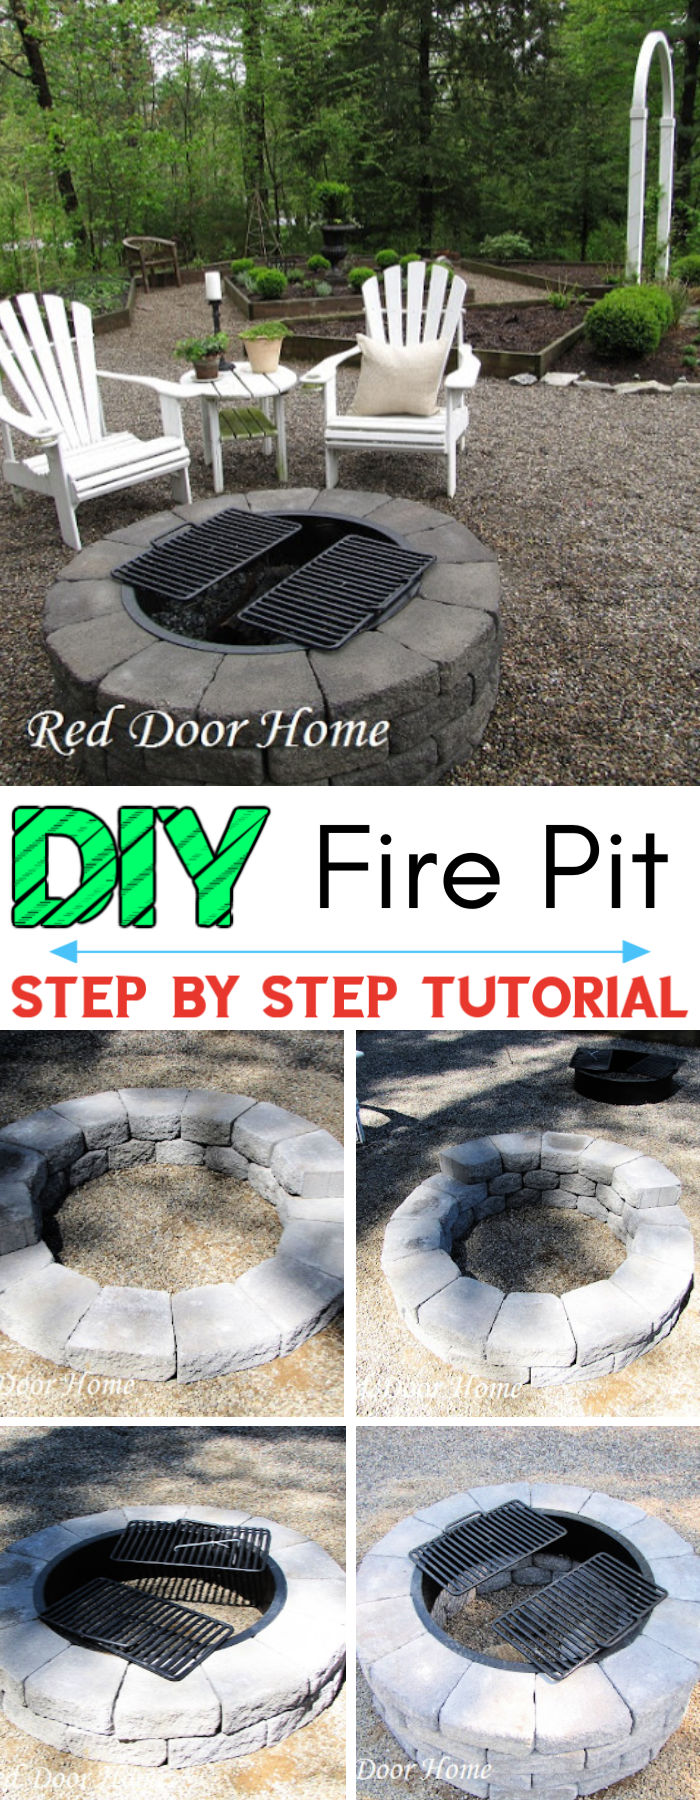 Building a Fire Pit Step by Step Tutorial